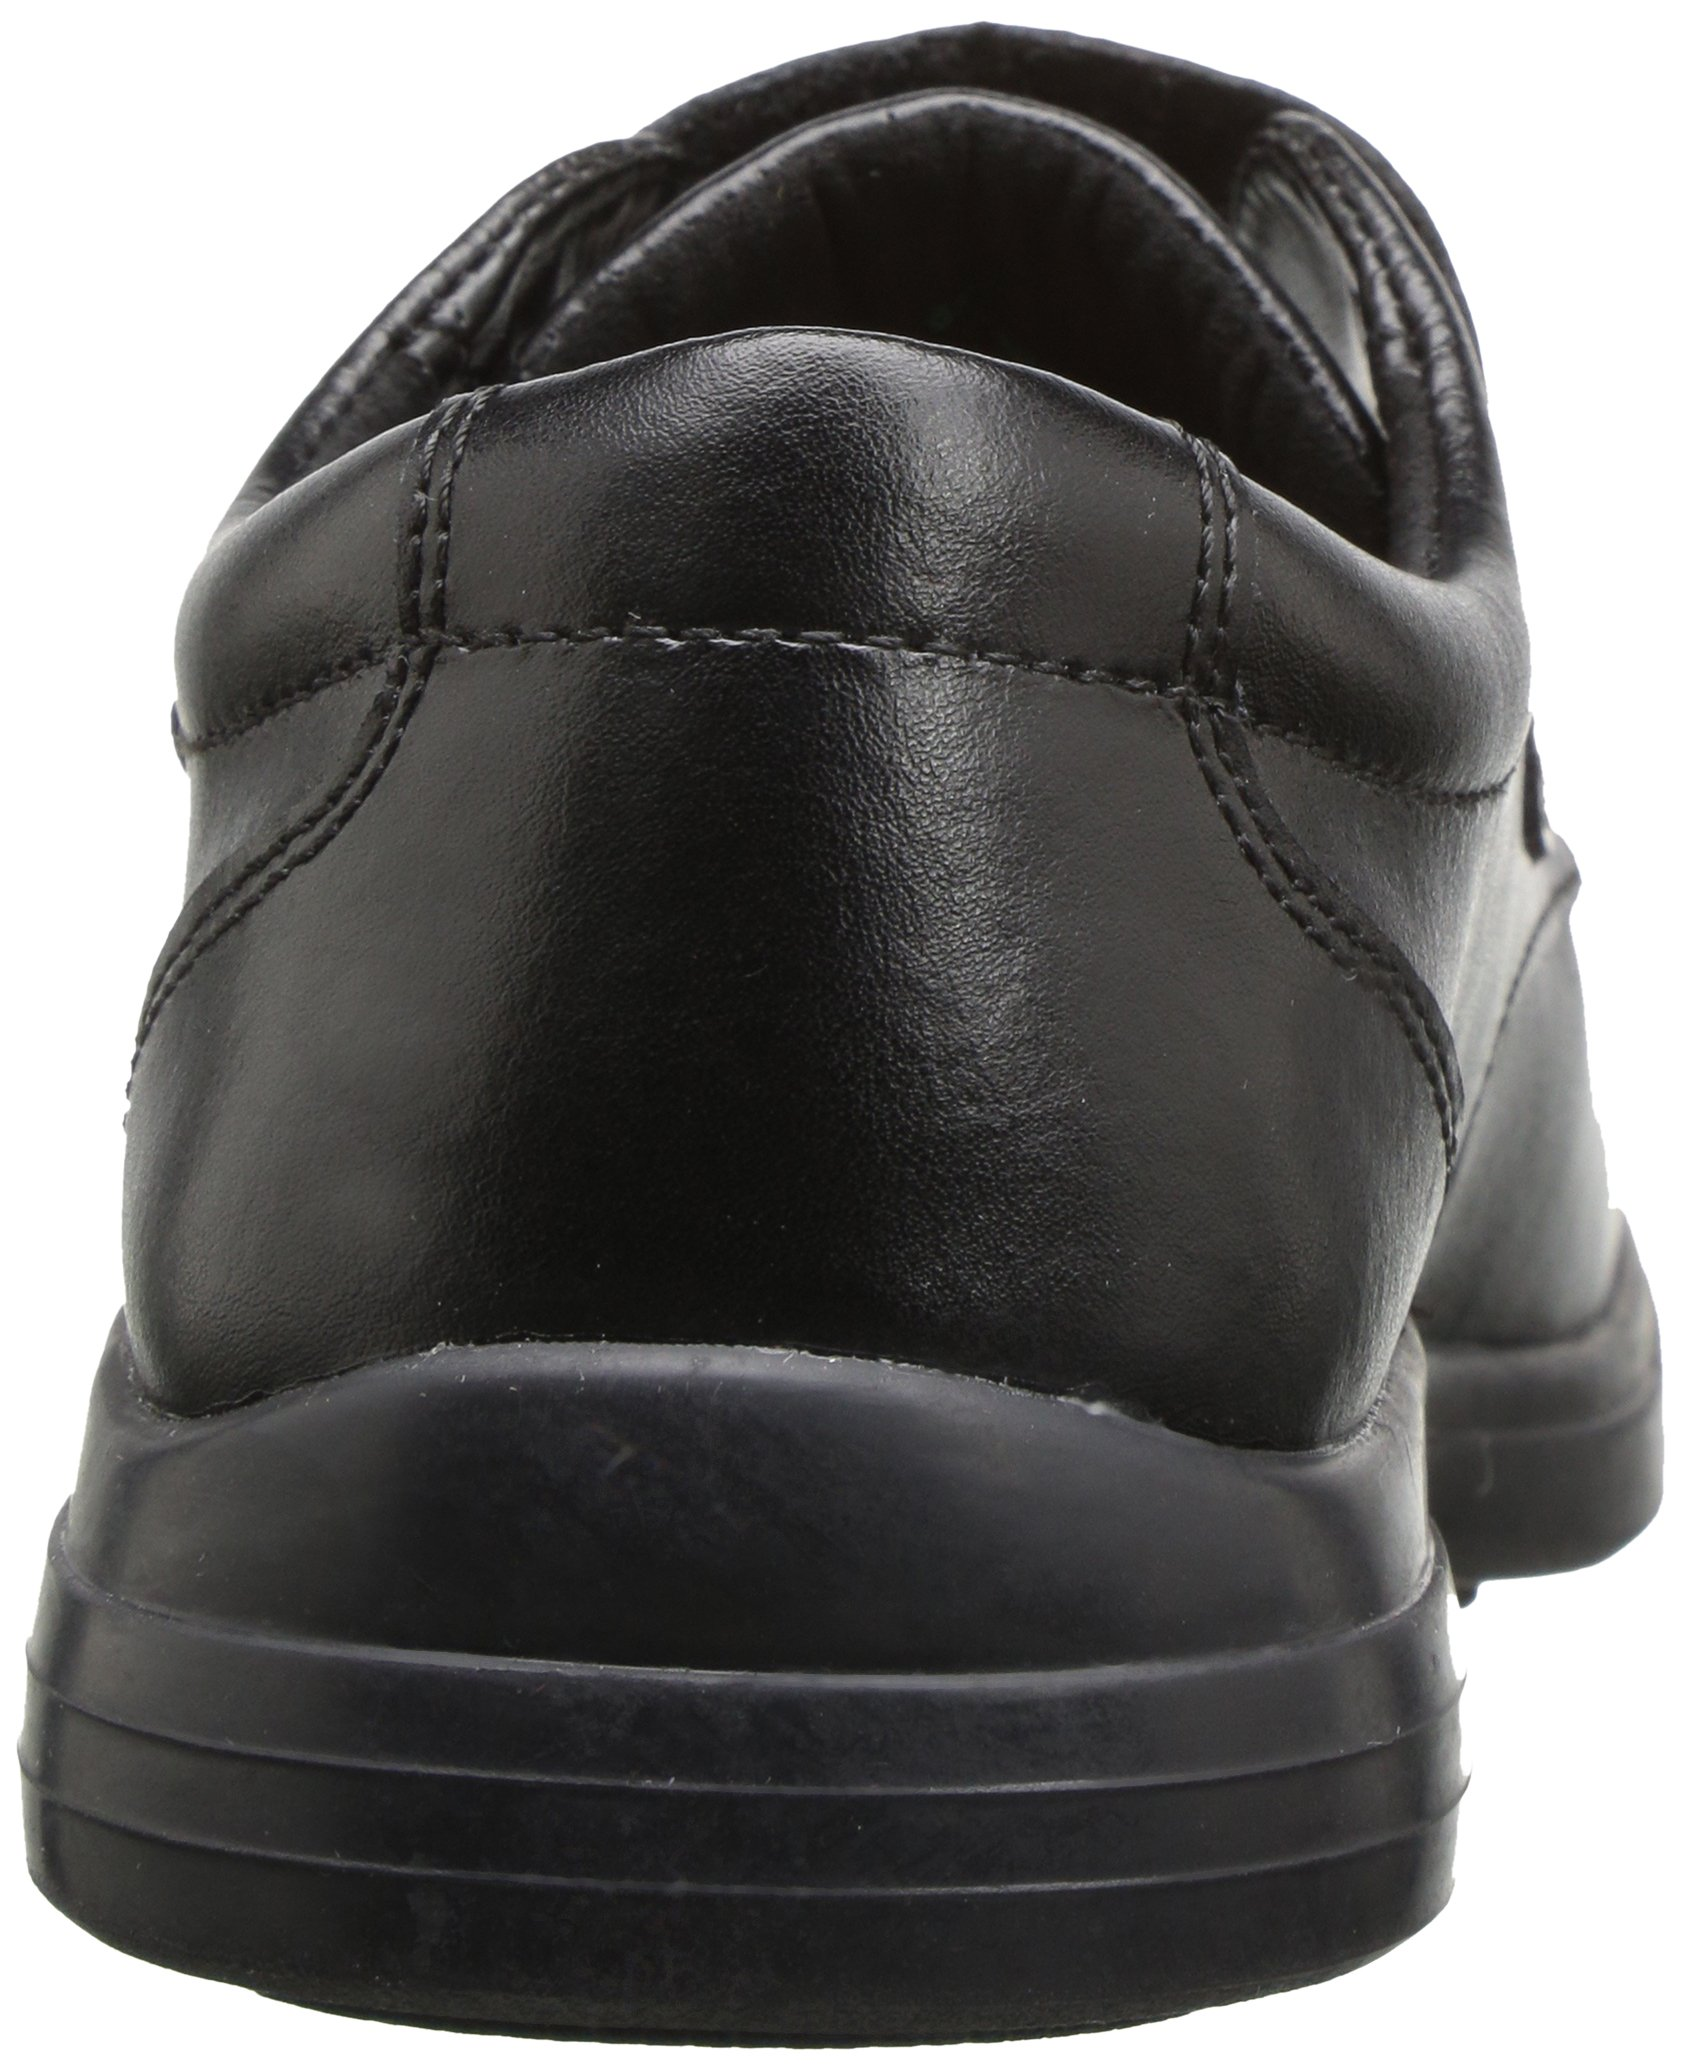 Hush Puppies Gavin Uniform Dress Shoe (Toddler/Little Kid/Big Kid), Black, 3 M US Little Kid by Hush Puppies (Image #2)